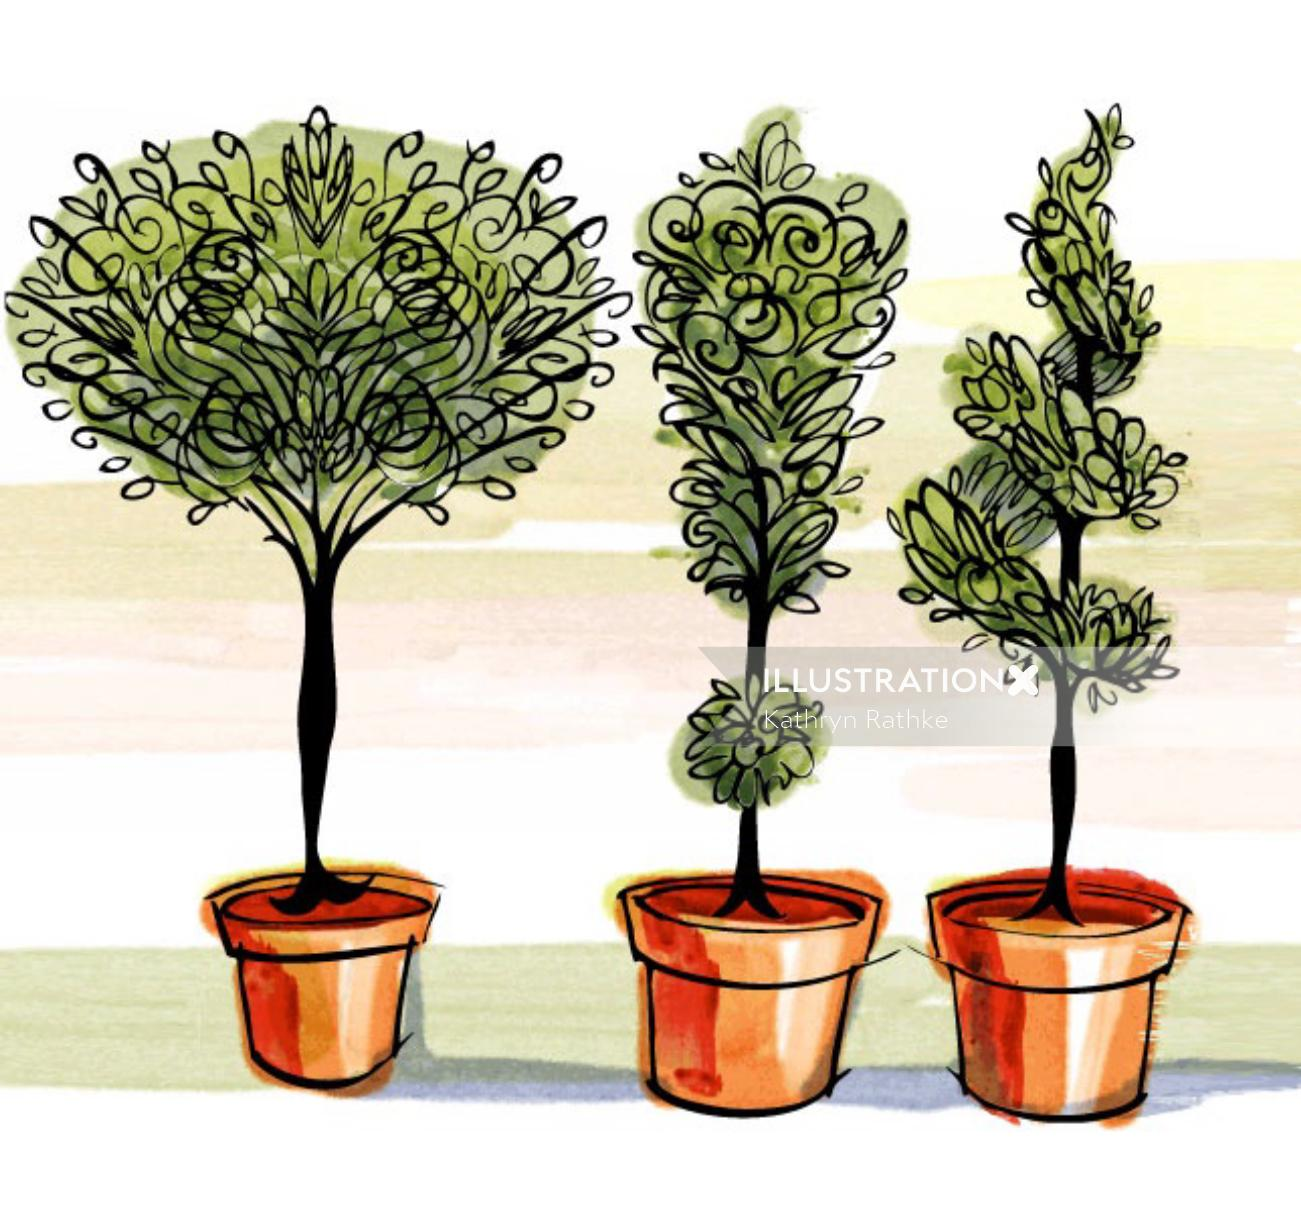 Painting of shrub plants